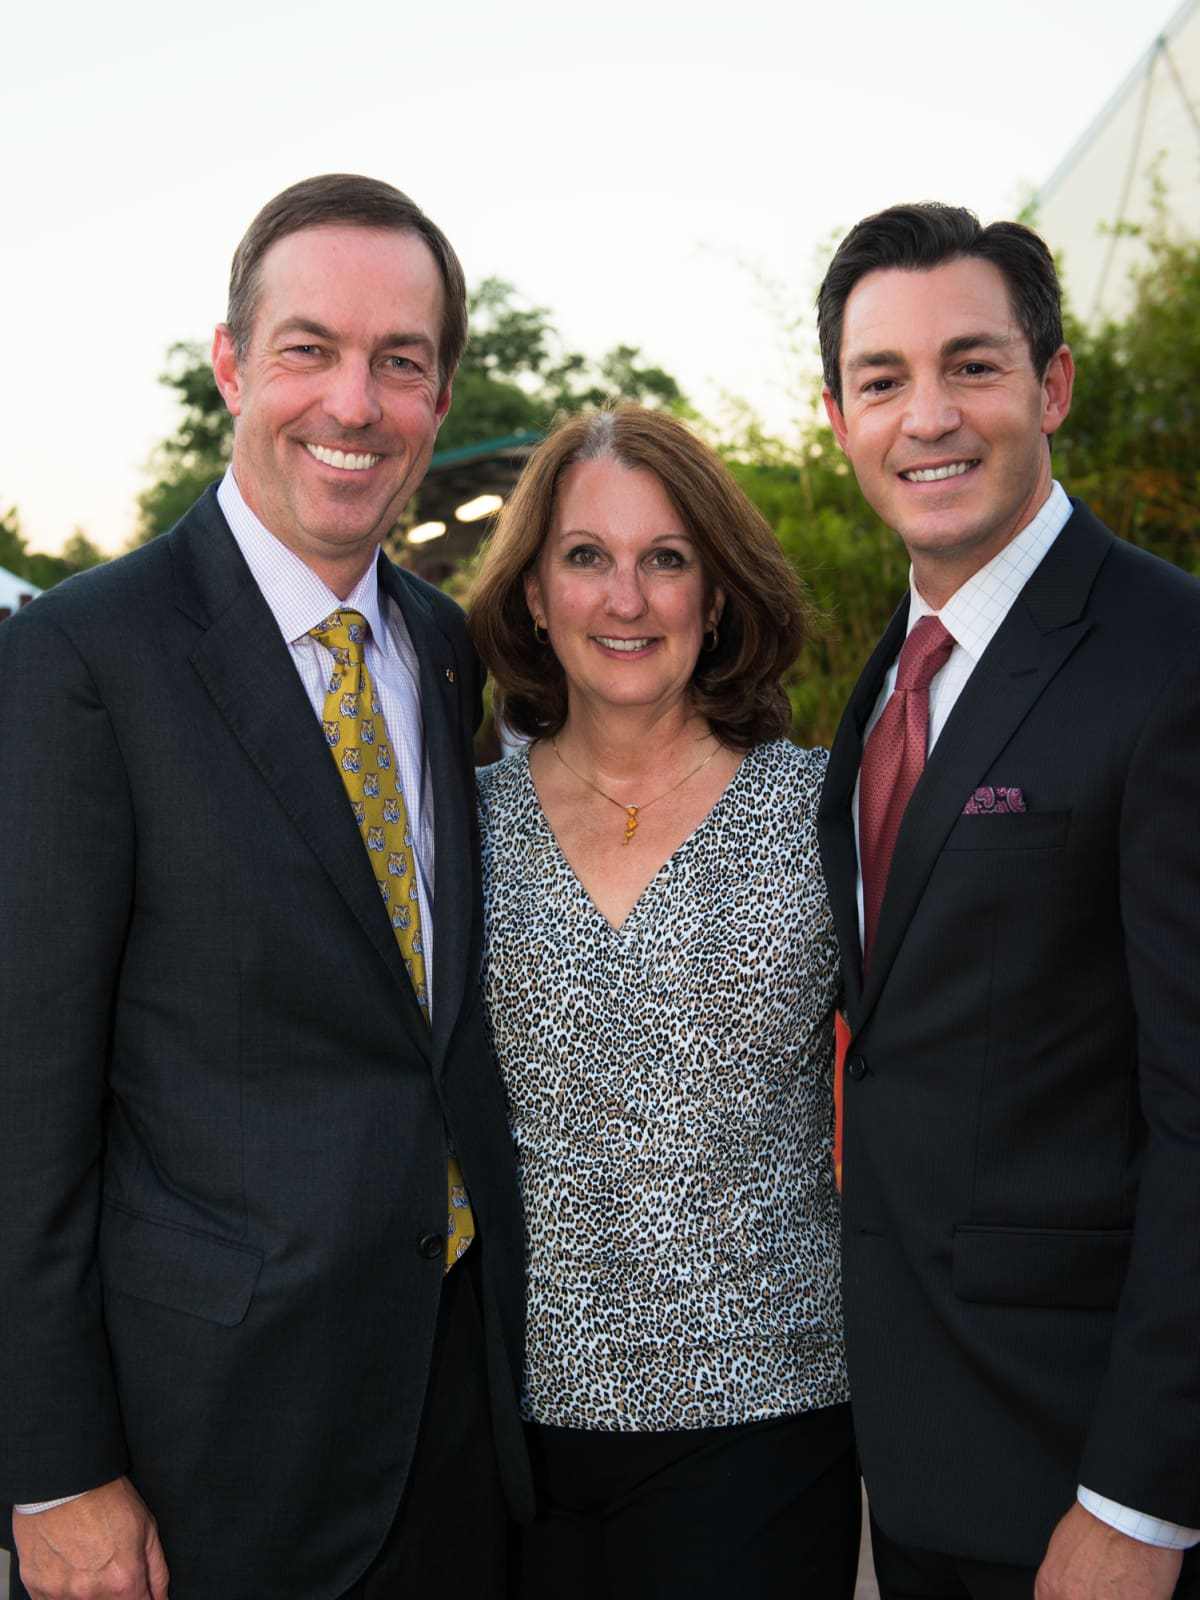 Houston Zoo Conservation Gala 2015 Bruce Niemeyer, Cathy Niemeyer, Andy Cerota